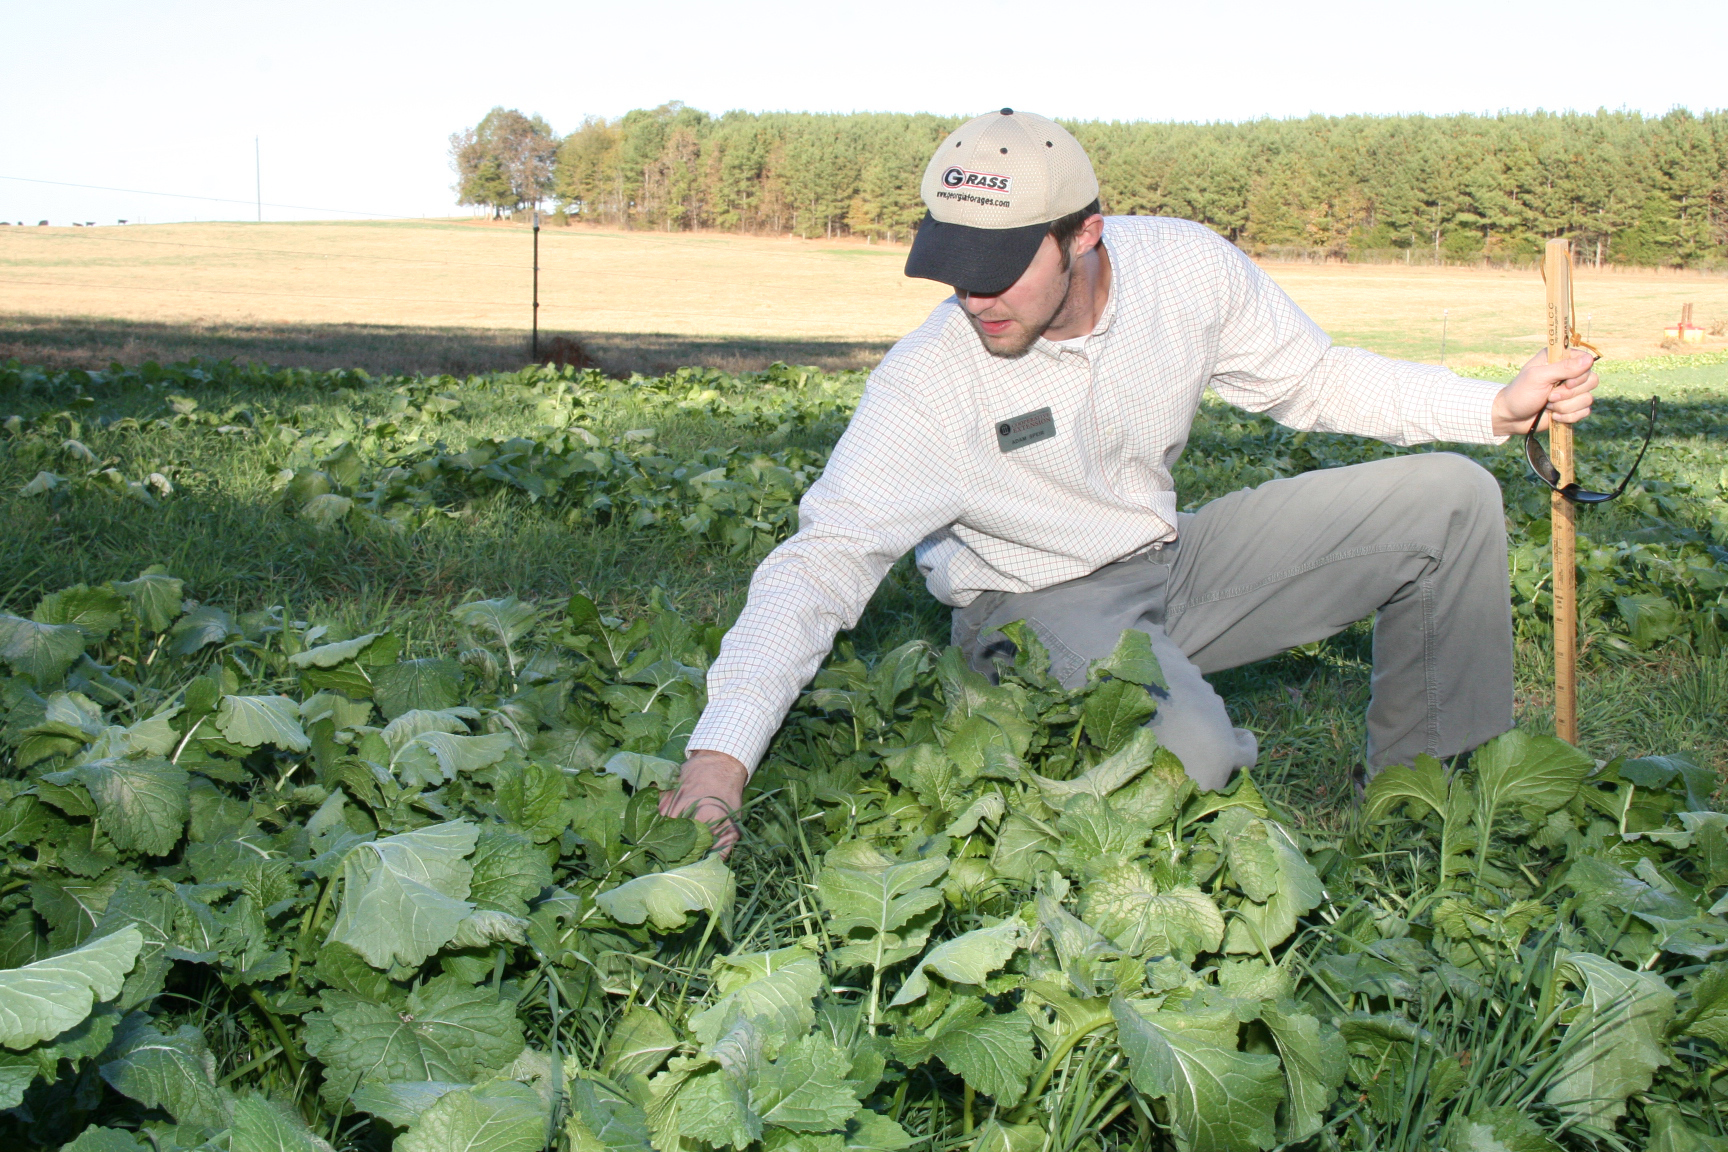 Madison County Extension Agent Adam Speir inspects turnip tops in Madison County farmer Terry Chandler's pasture in fall 2013.